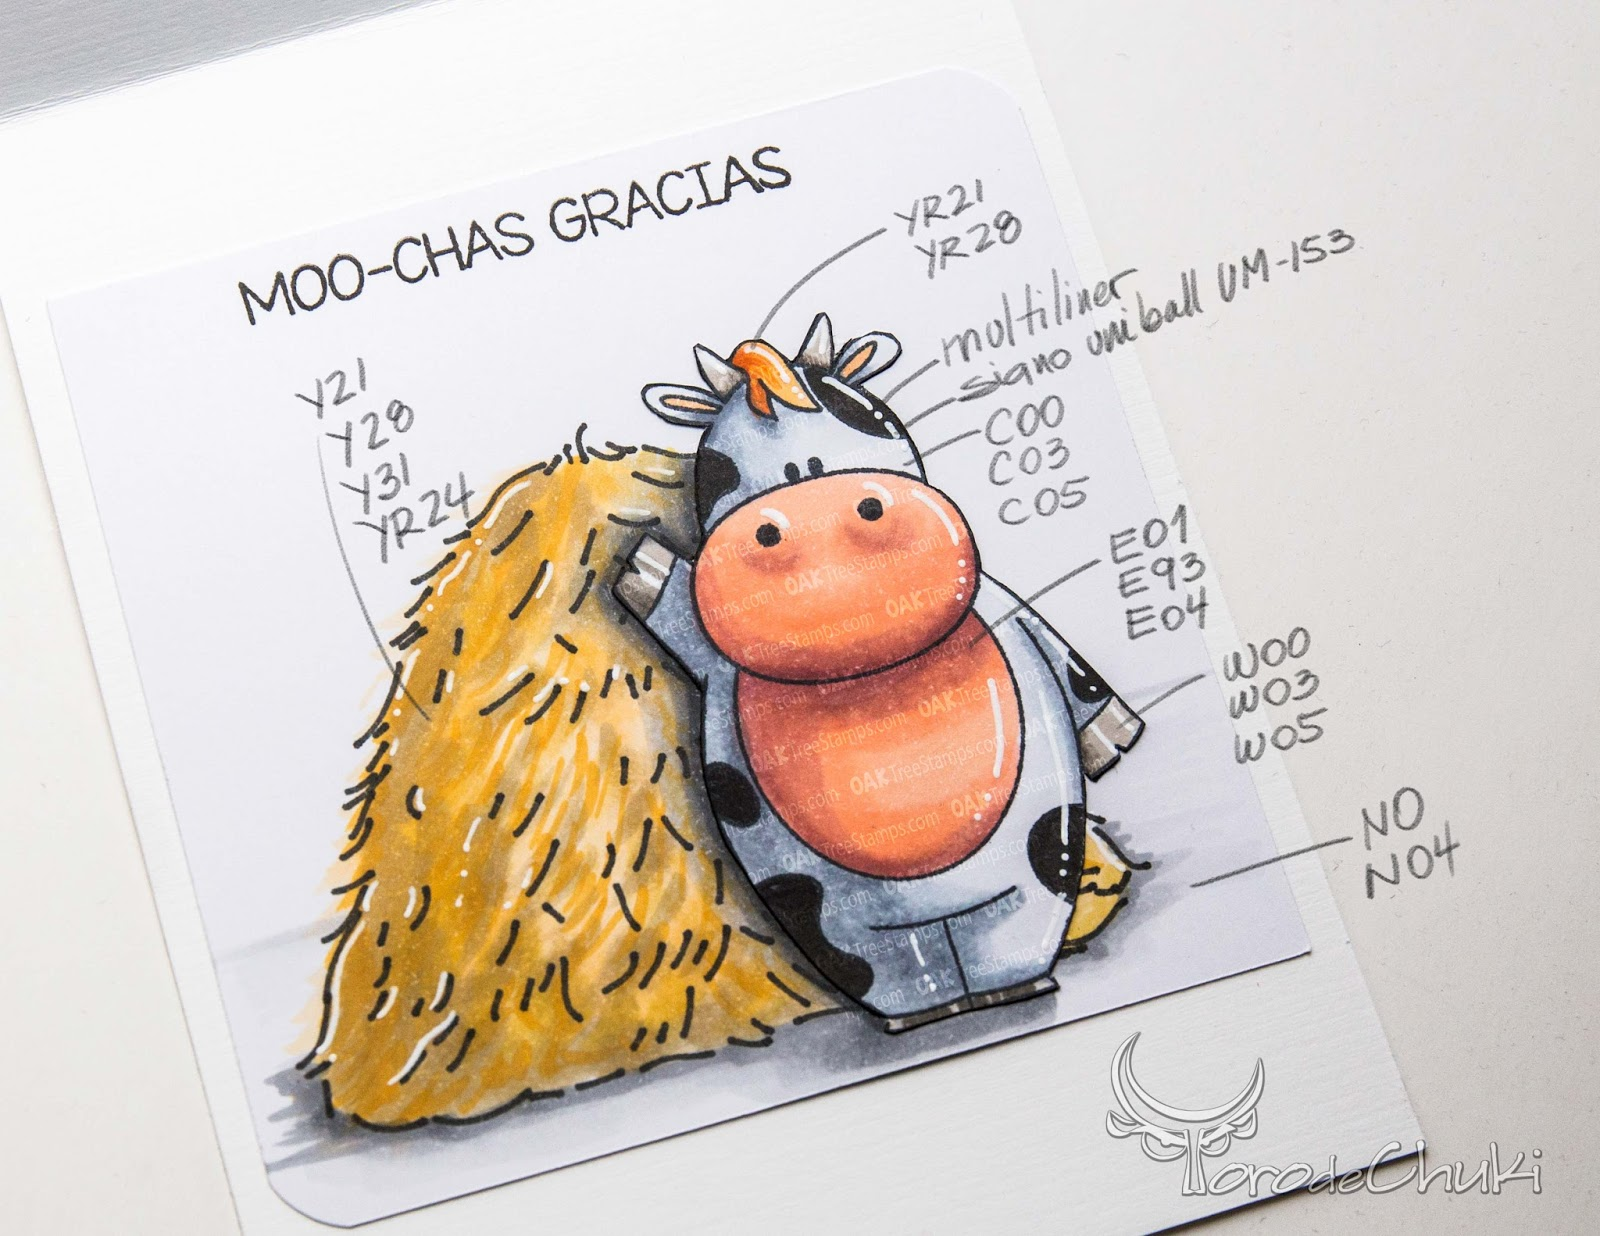 Awesome Svgs  Moo-chas Gracias Card